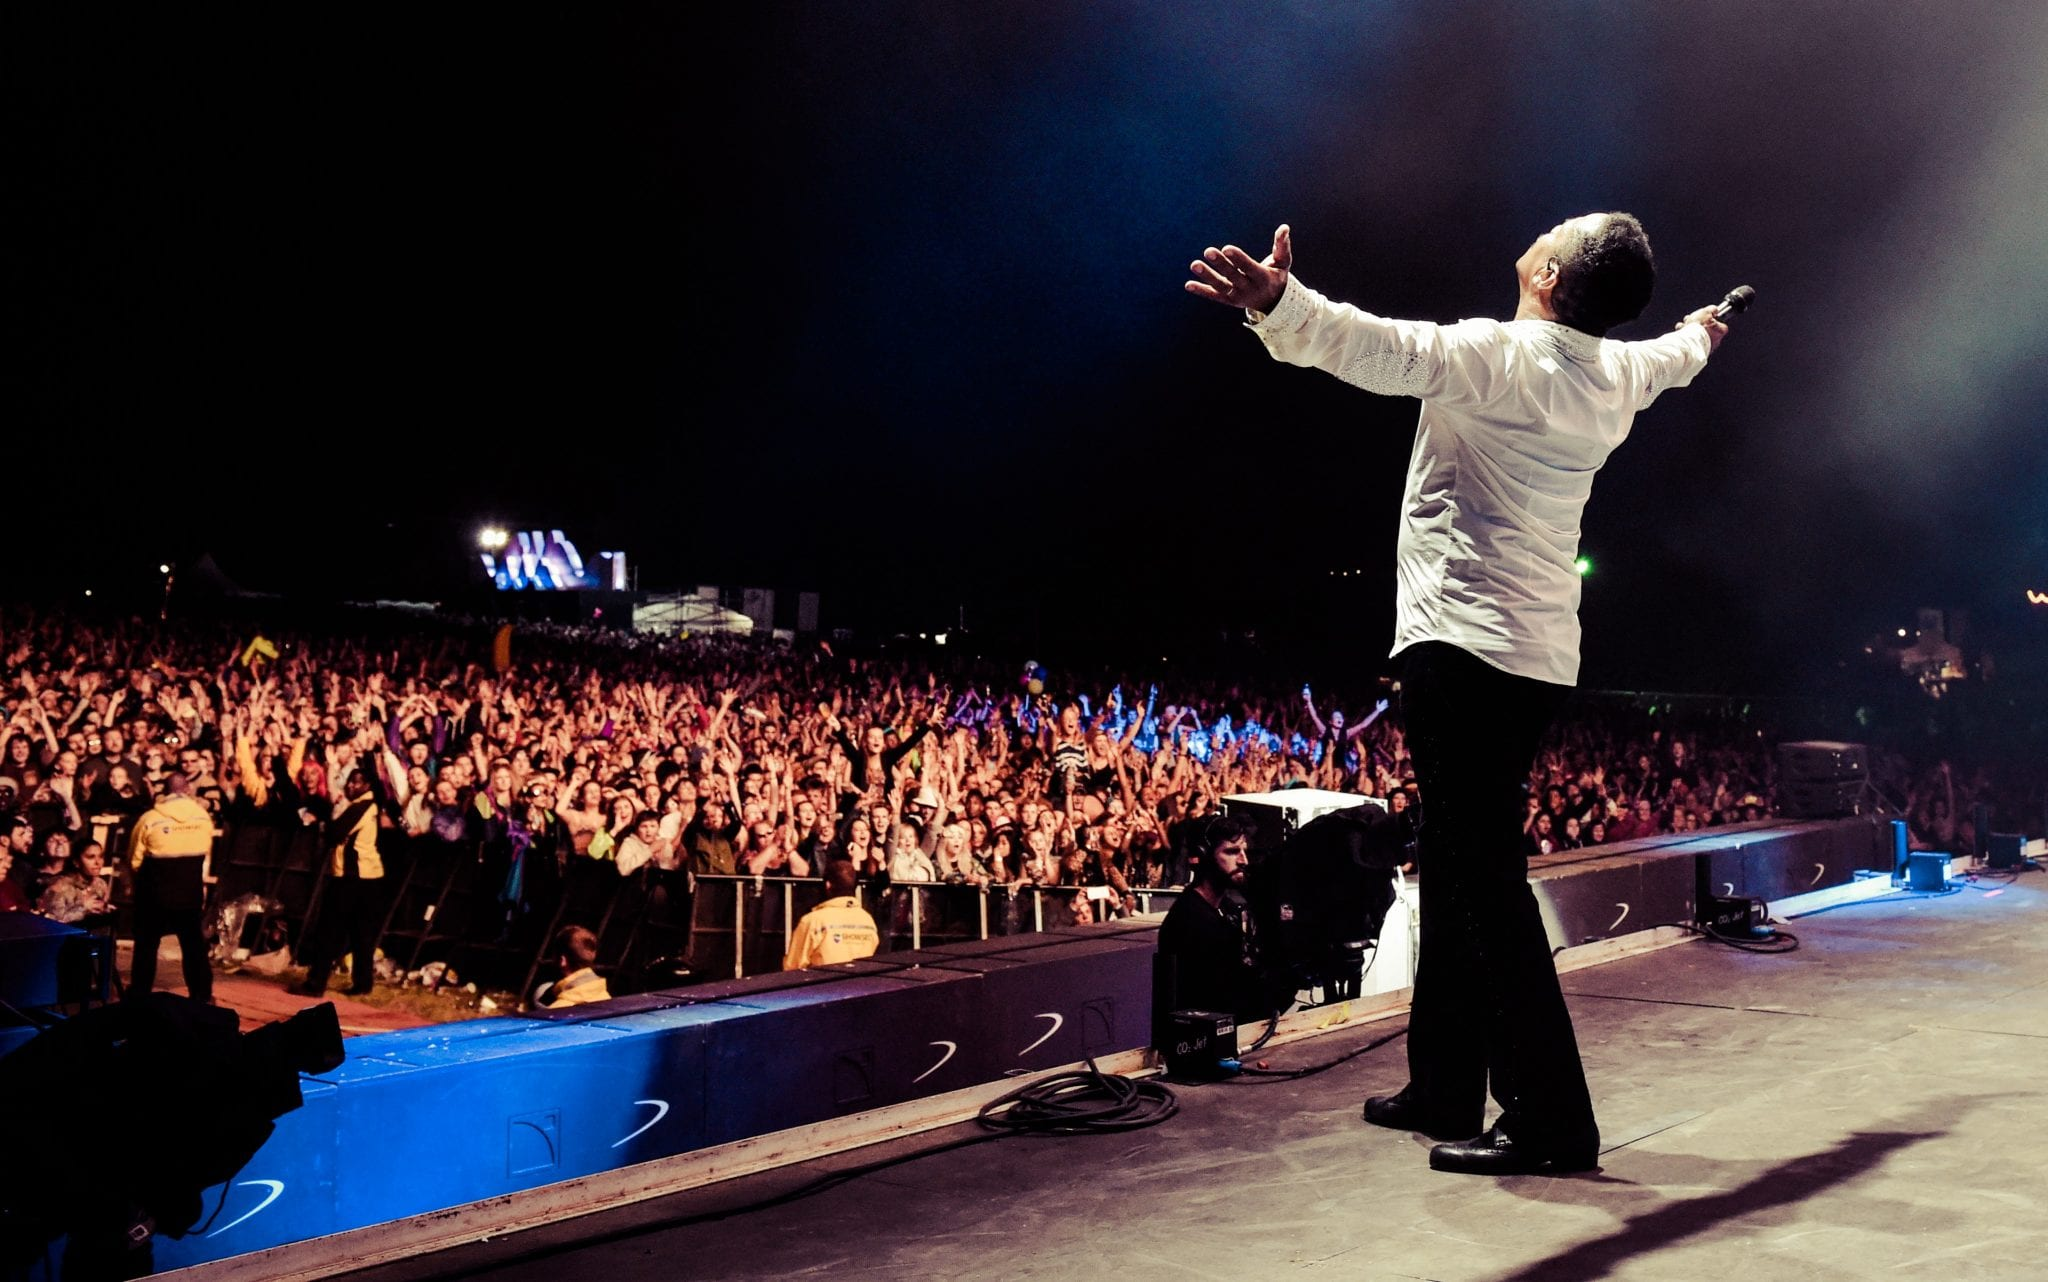 SCARBOROUGH GET READY TO 'SHAKE YOUR BODY DOWN' AS THE JACKSONS COME TO TOWN